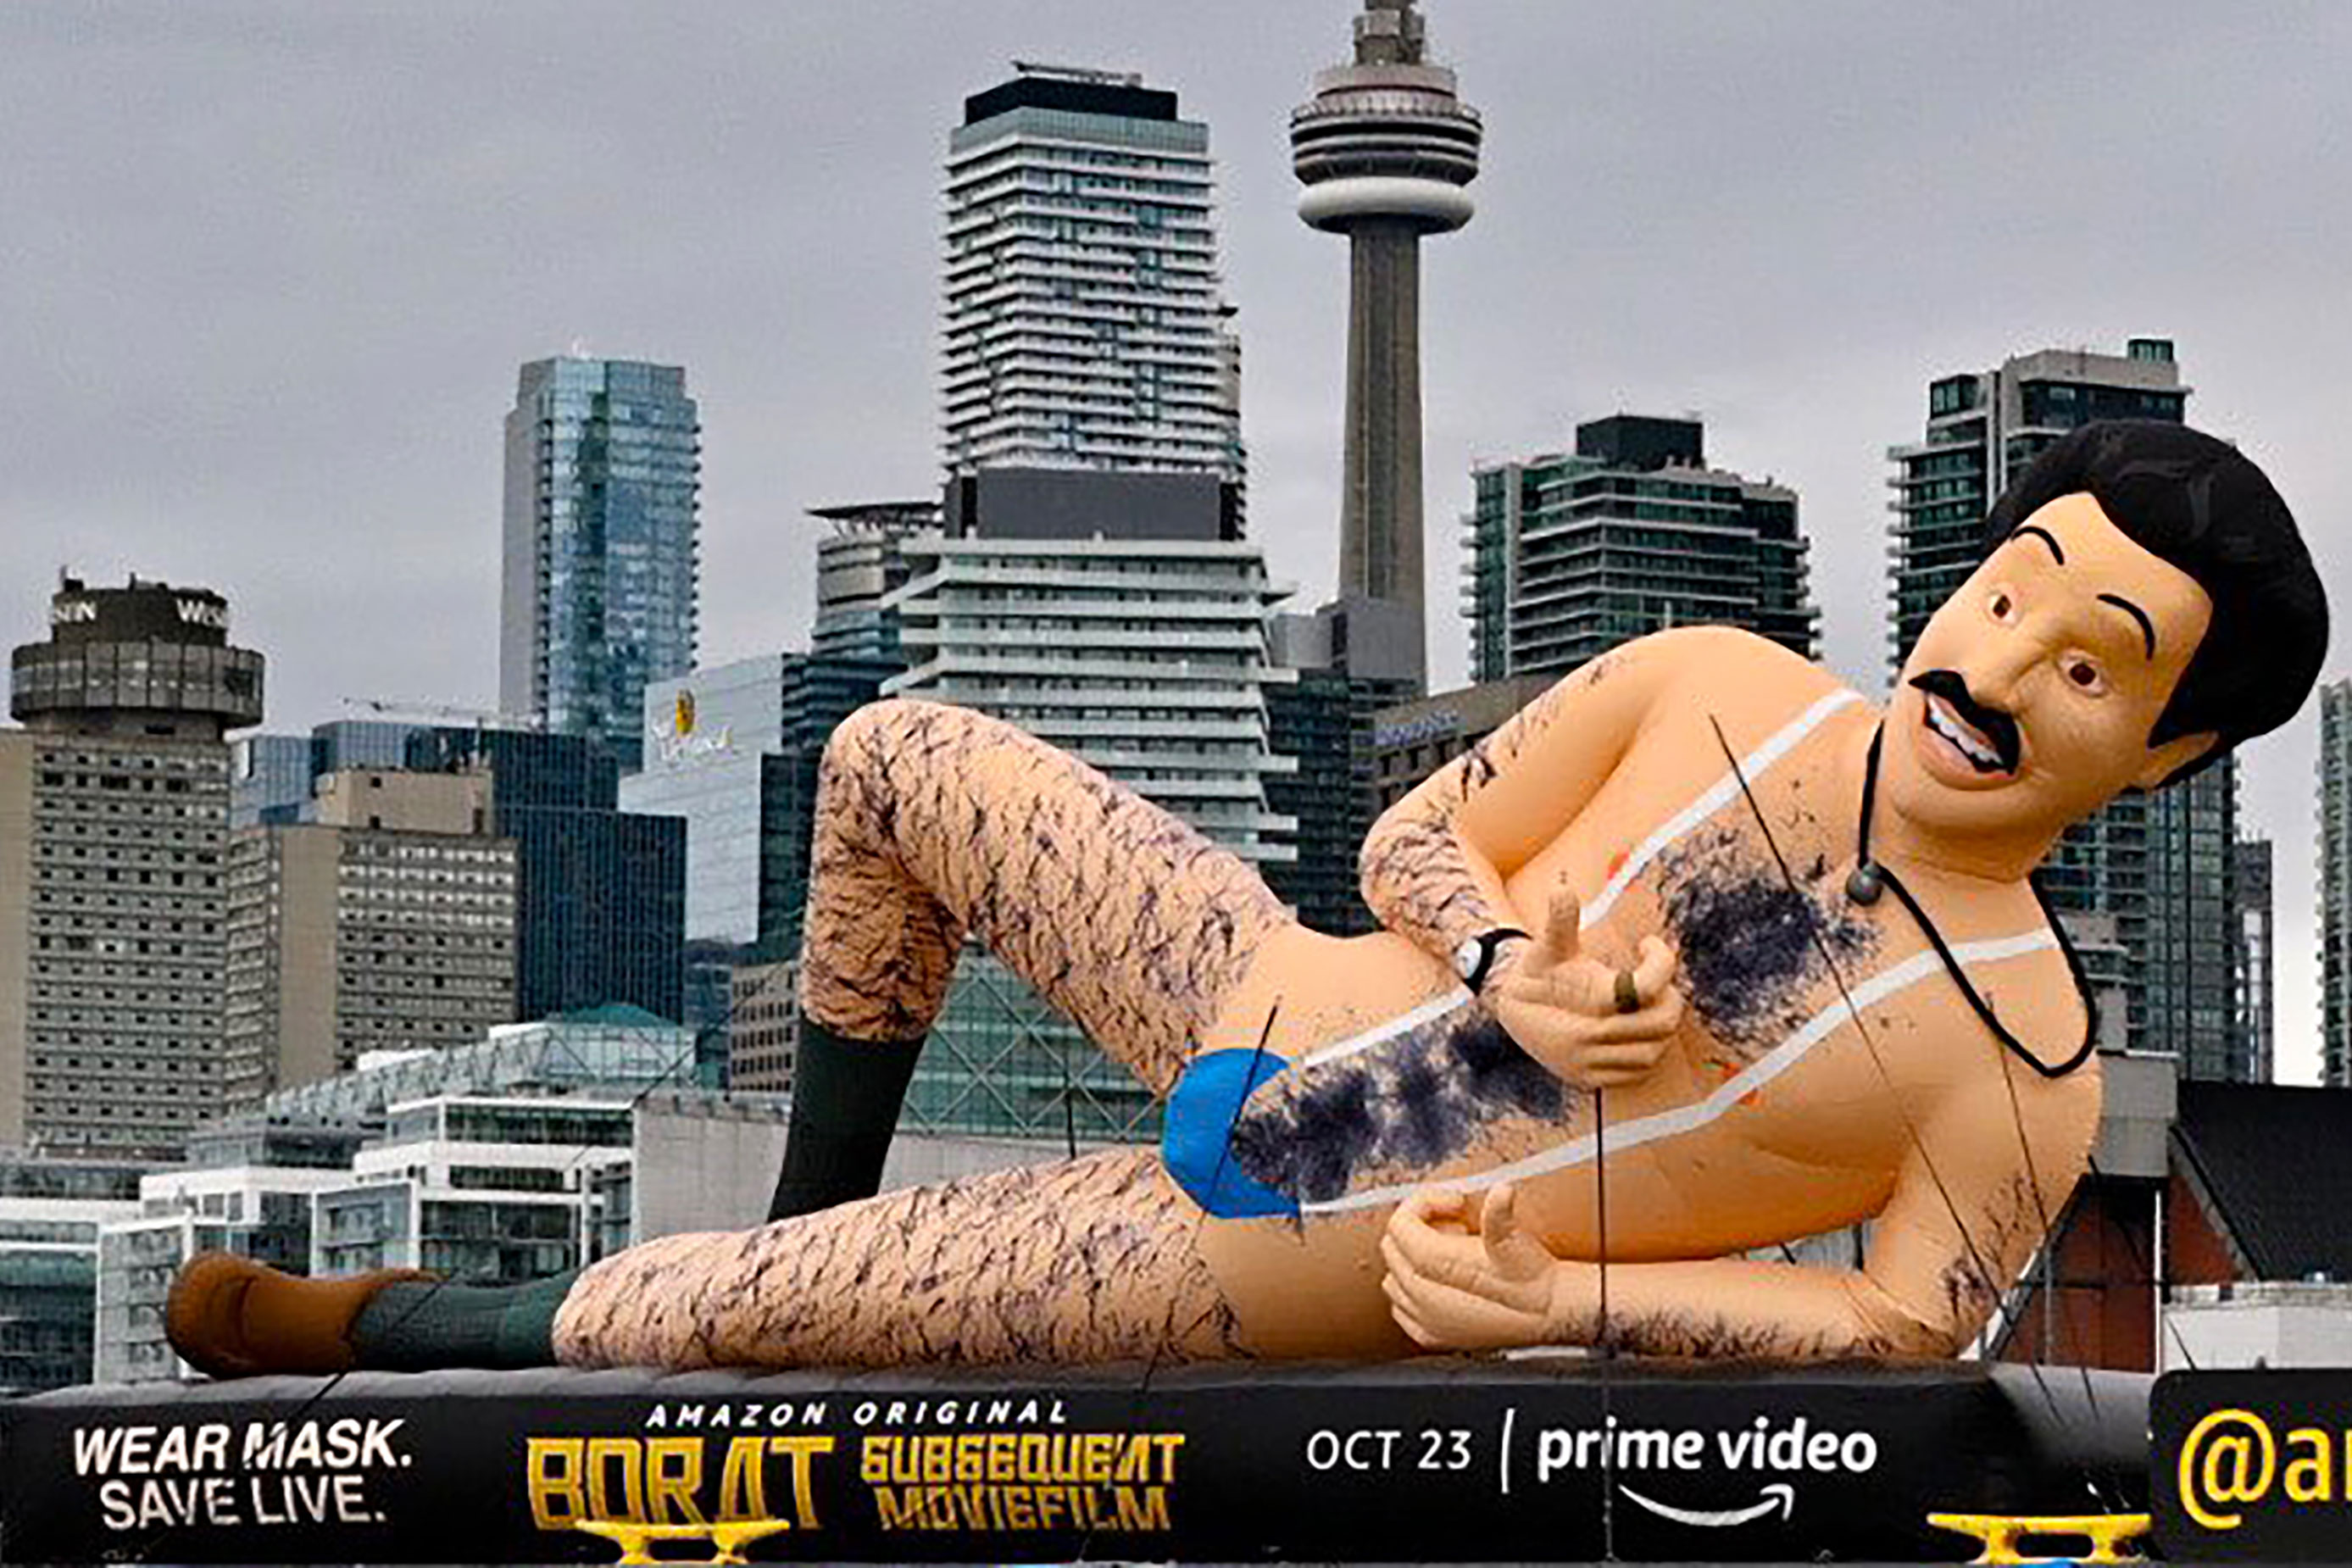 Borat makes Amazon debut, and a Quibi postmortem: Friday Wake-Up Call